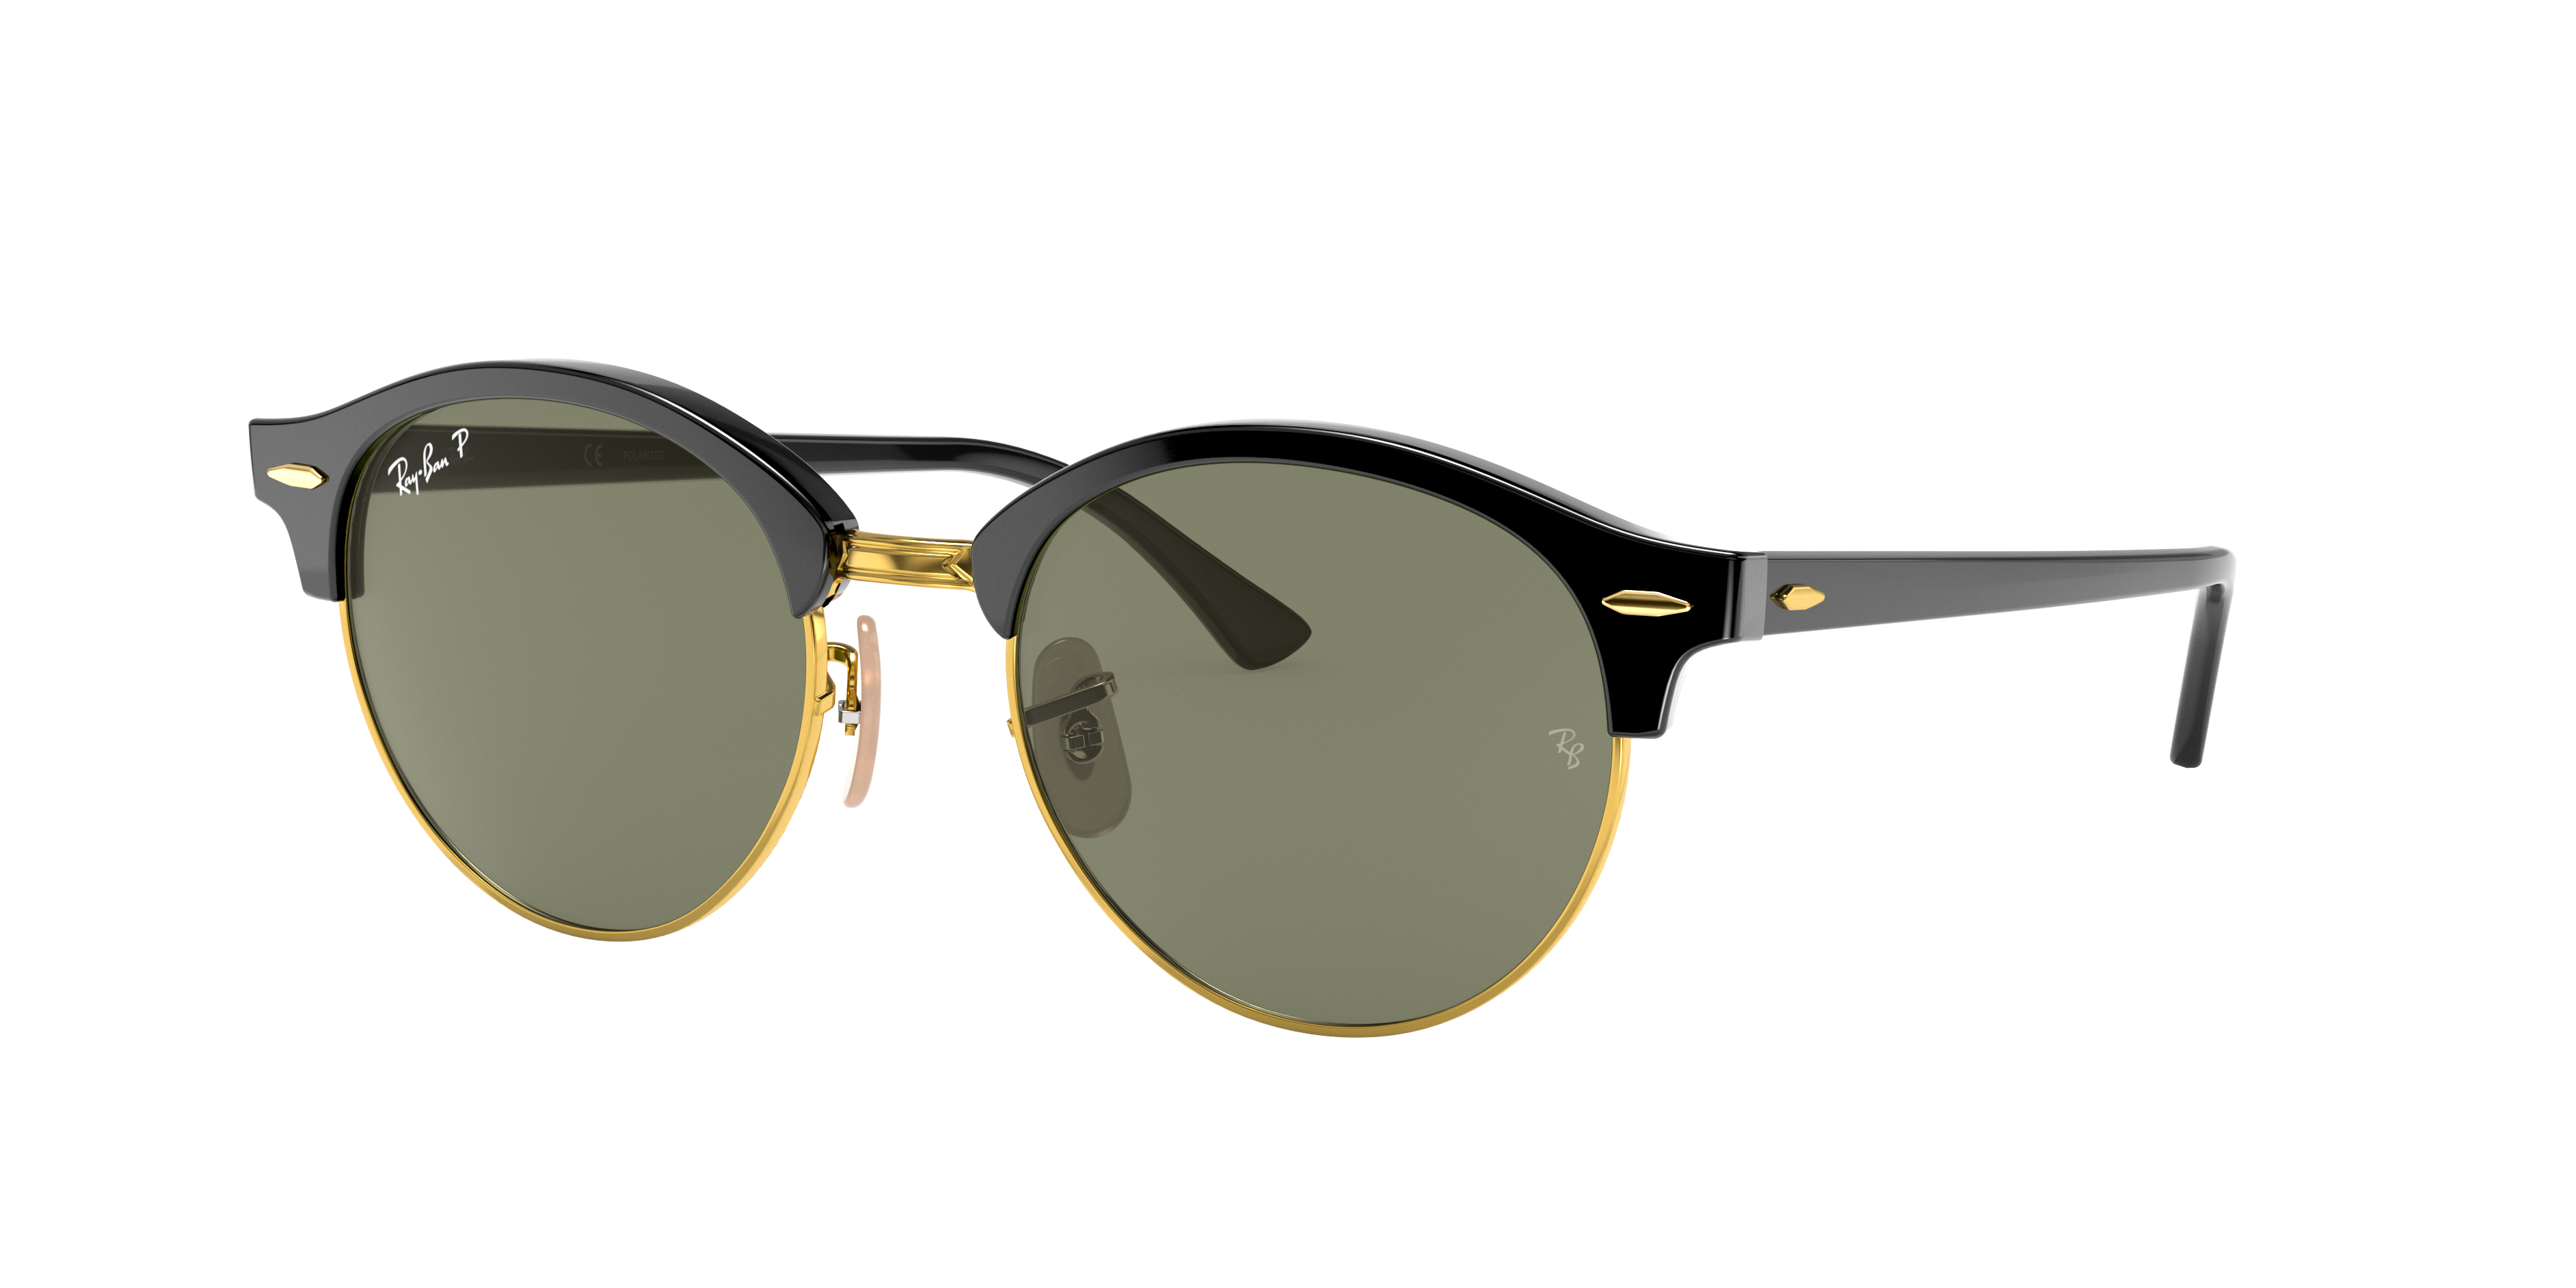 Ray-Ban Clubround Classic Black, Polarized Green Lenses - RB4246